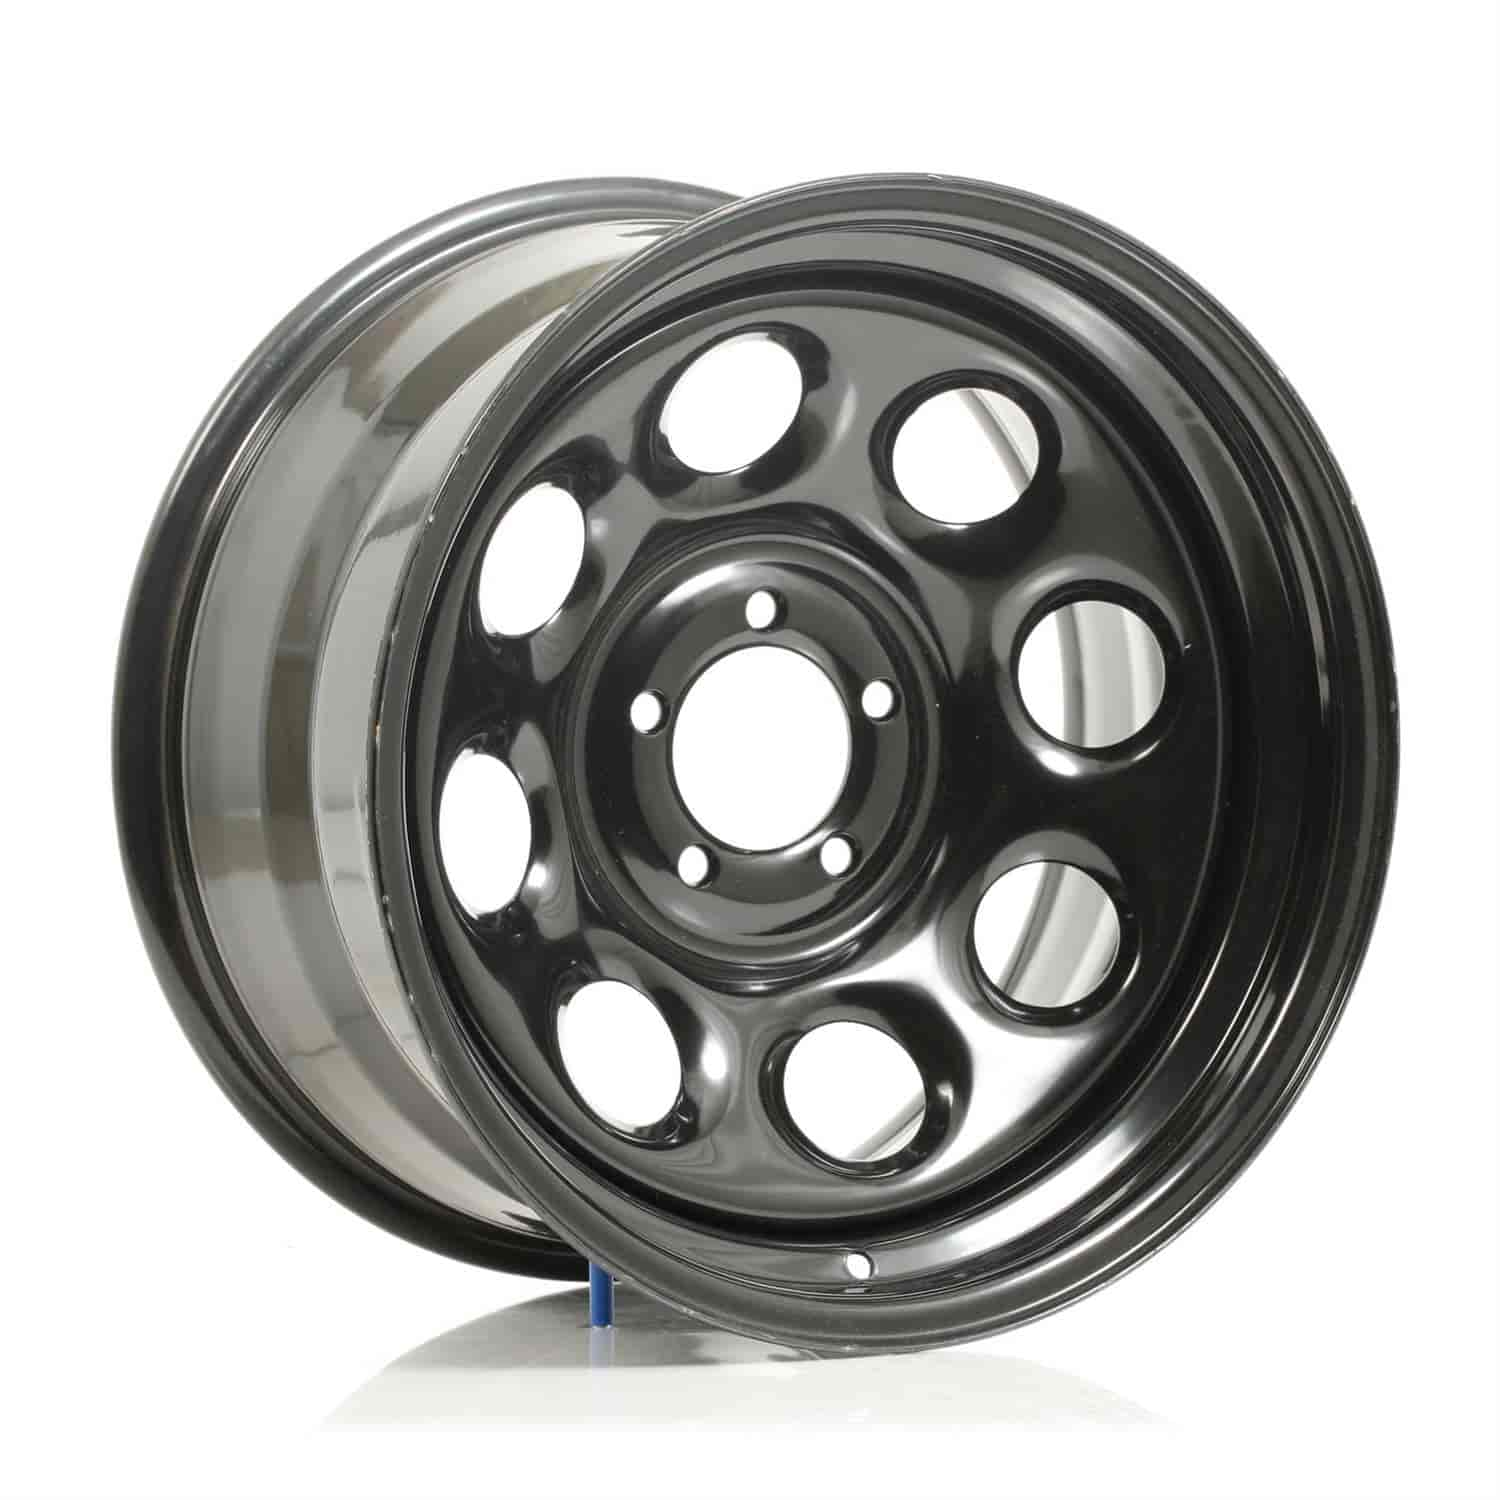 Cragar 3978912 - Cragar Black Soft 8 Wheels